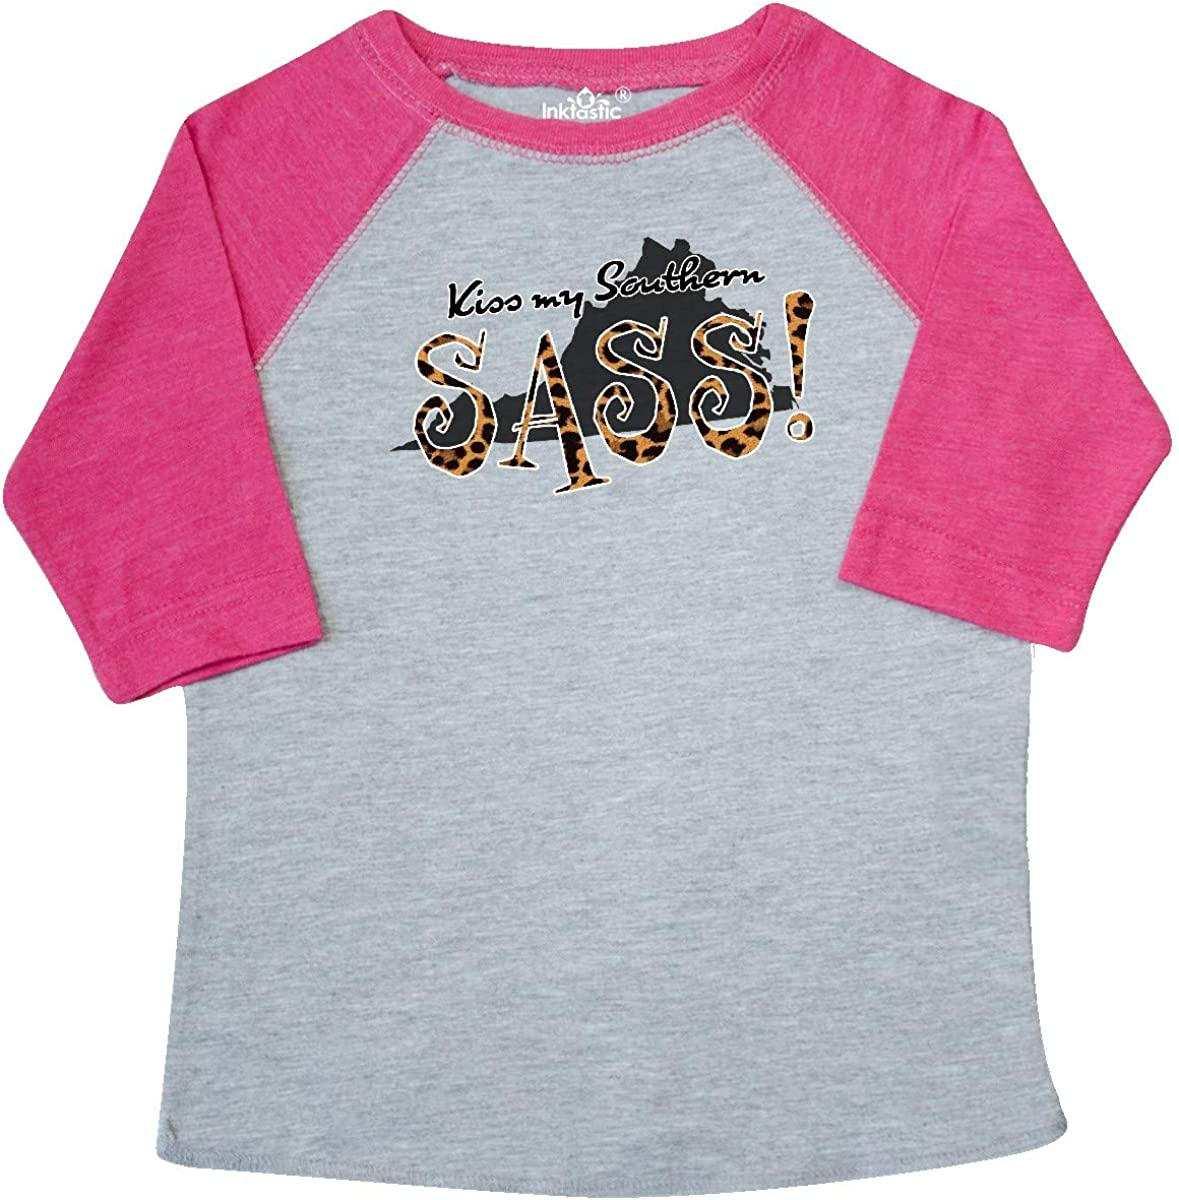 inktastic Virginia Kiss My Southern Sass in Leopard Print Toddler T-Shirt